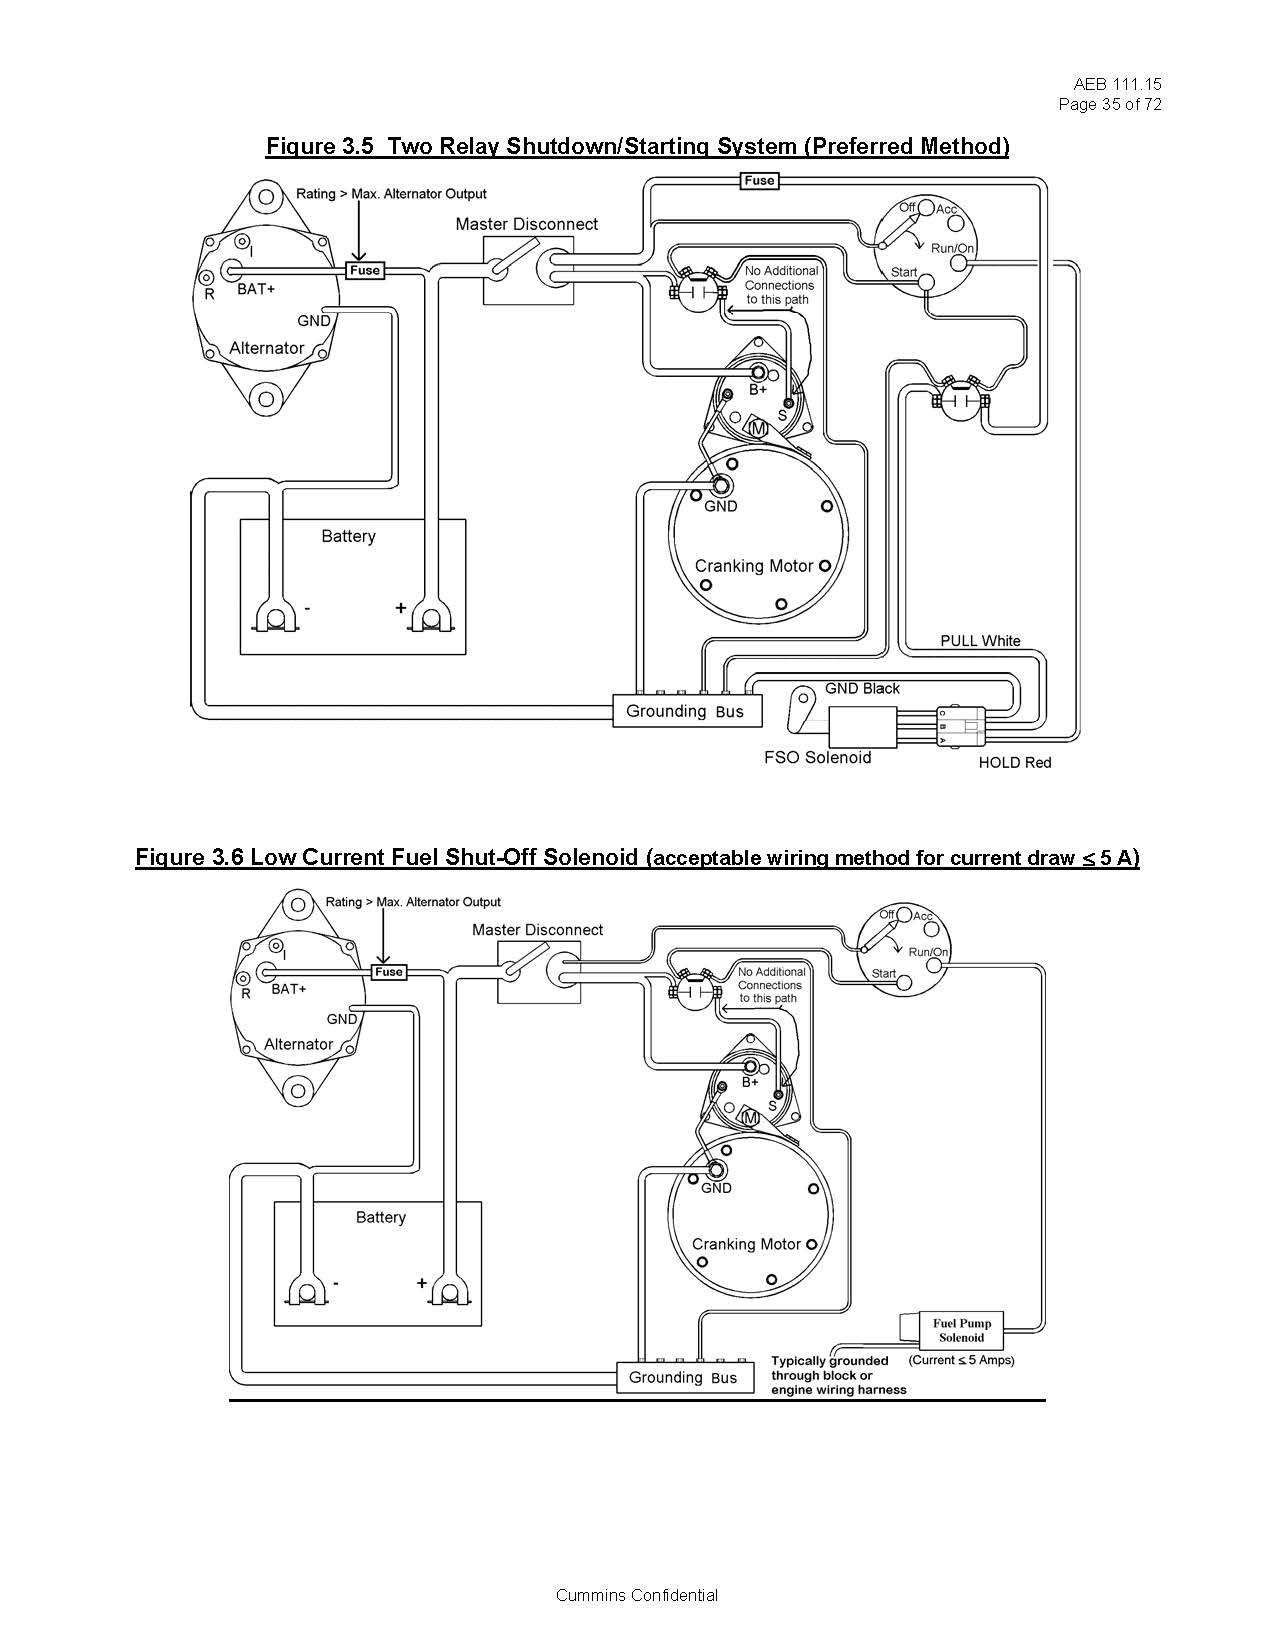 Basic Fuel Shutoff Solenoid And Starter Wiring Information Desiel 3 Post Diagram Pages From Cummins Page 2